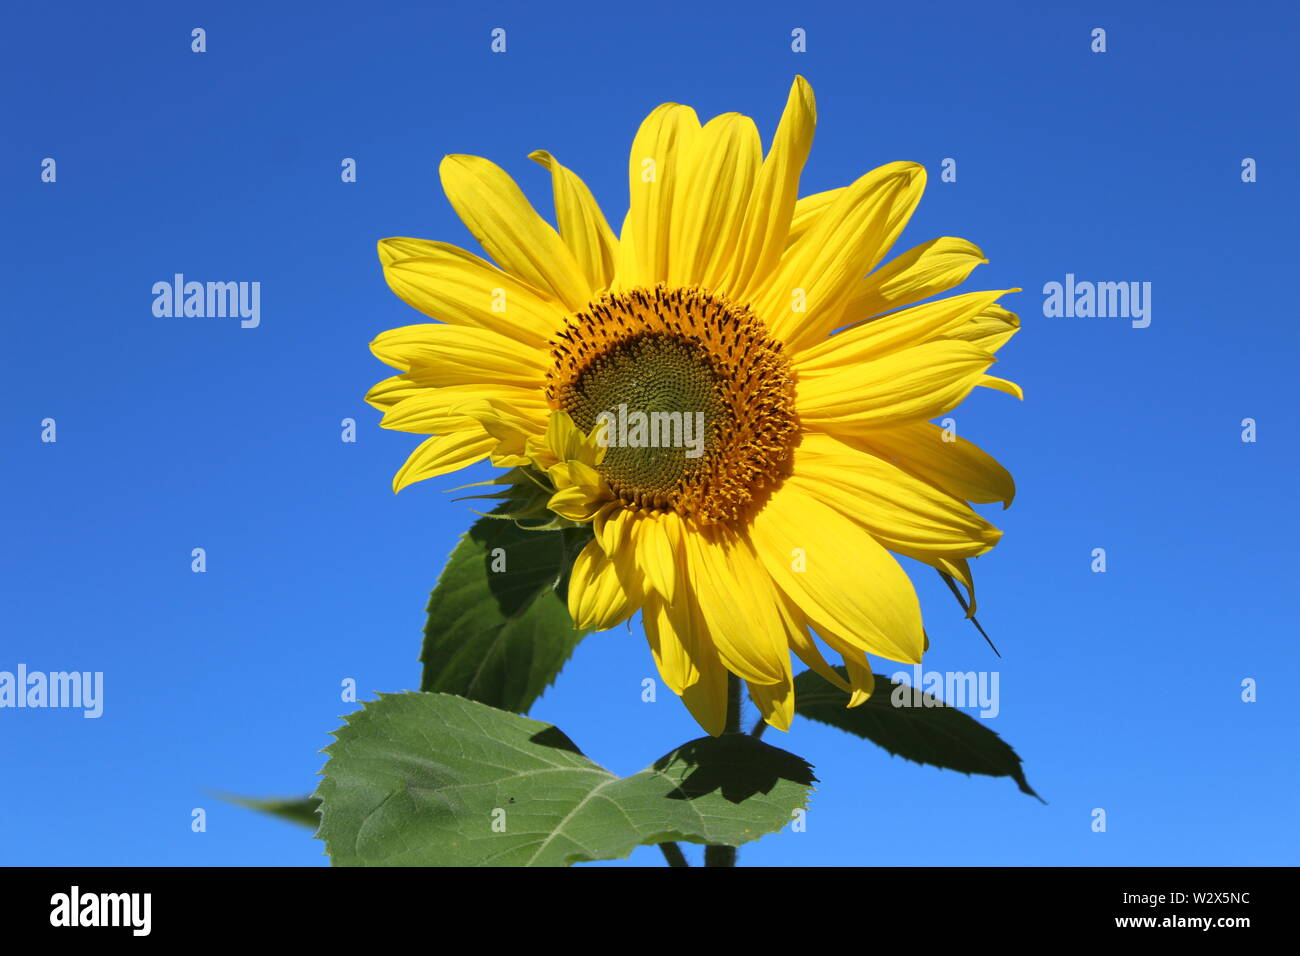 A sunflower against a cloudless blue sky - Stock Image